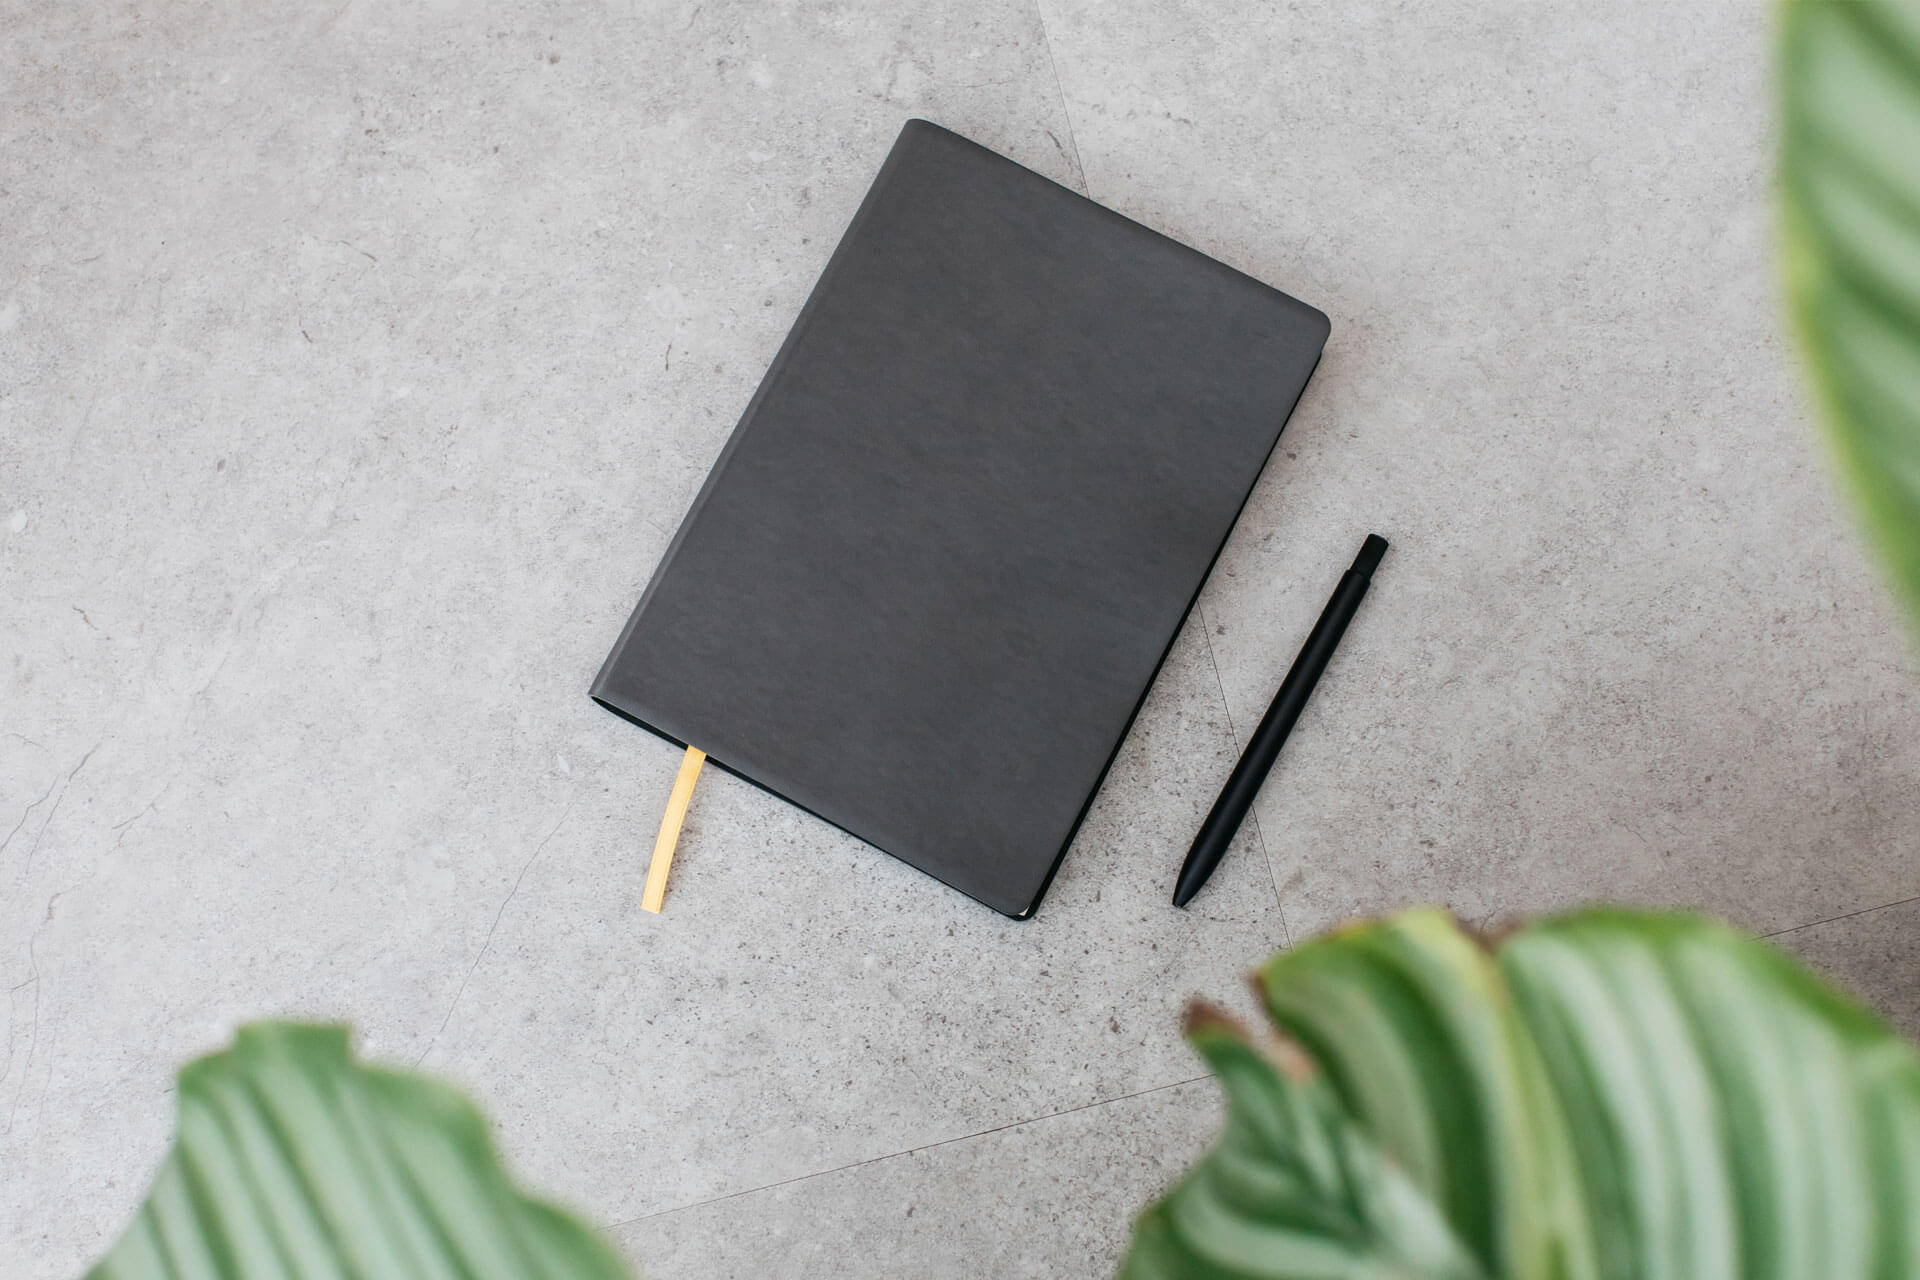 New to Journaling? Download Our Free Guidebook